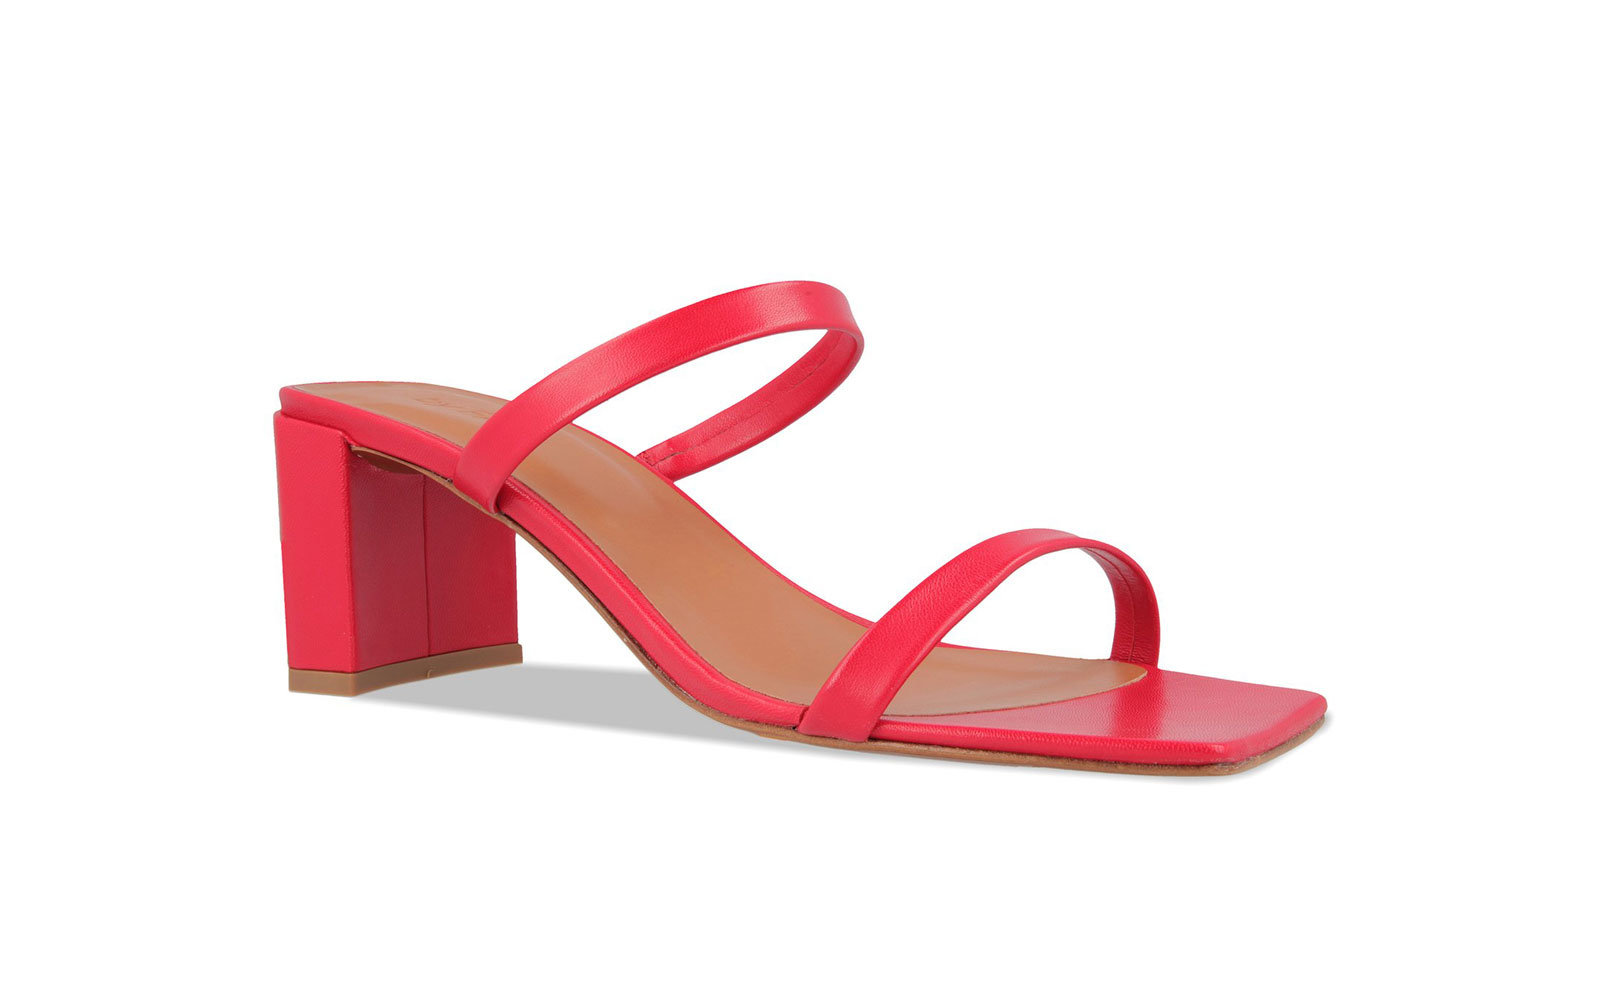 00851c23c548 The Best Summer Sandals for 2018